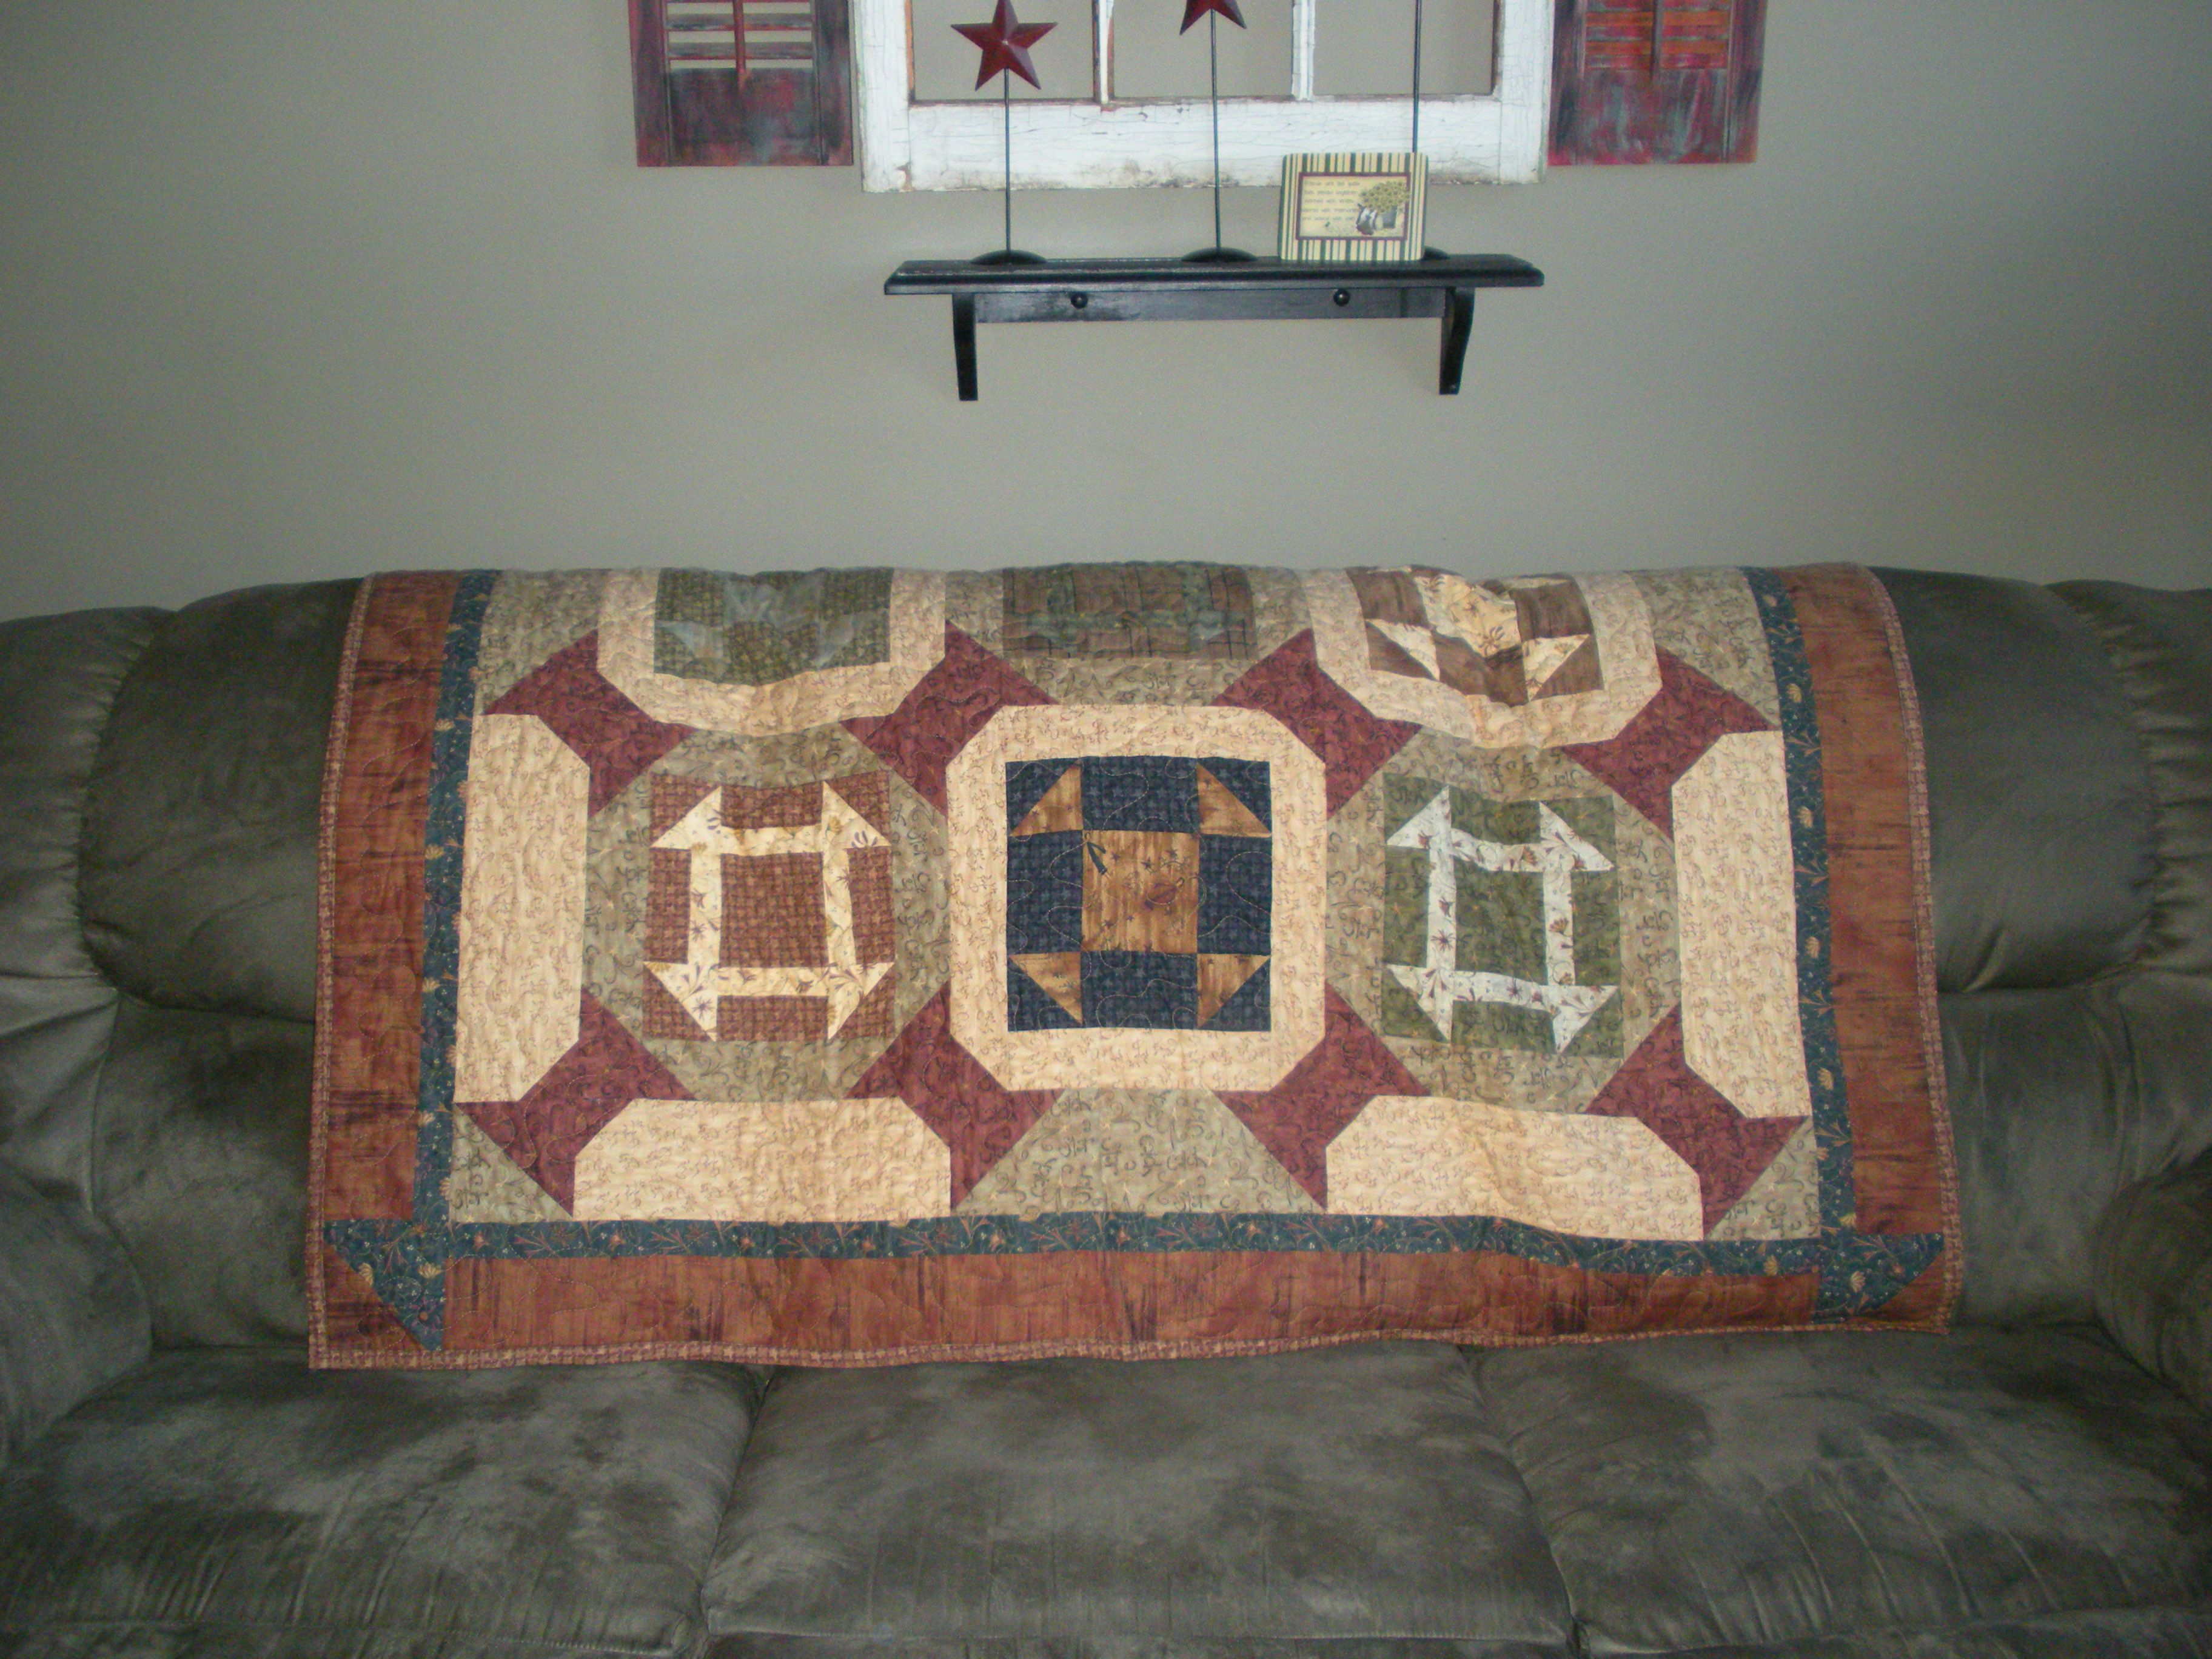 Living Room Quilts my living room quilts | my quilts, sewing and crafts | pinterest